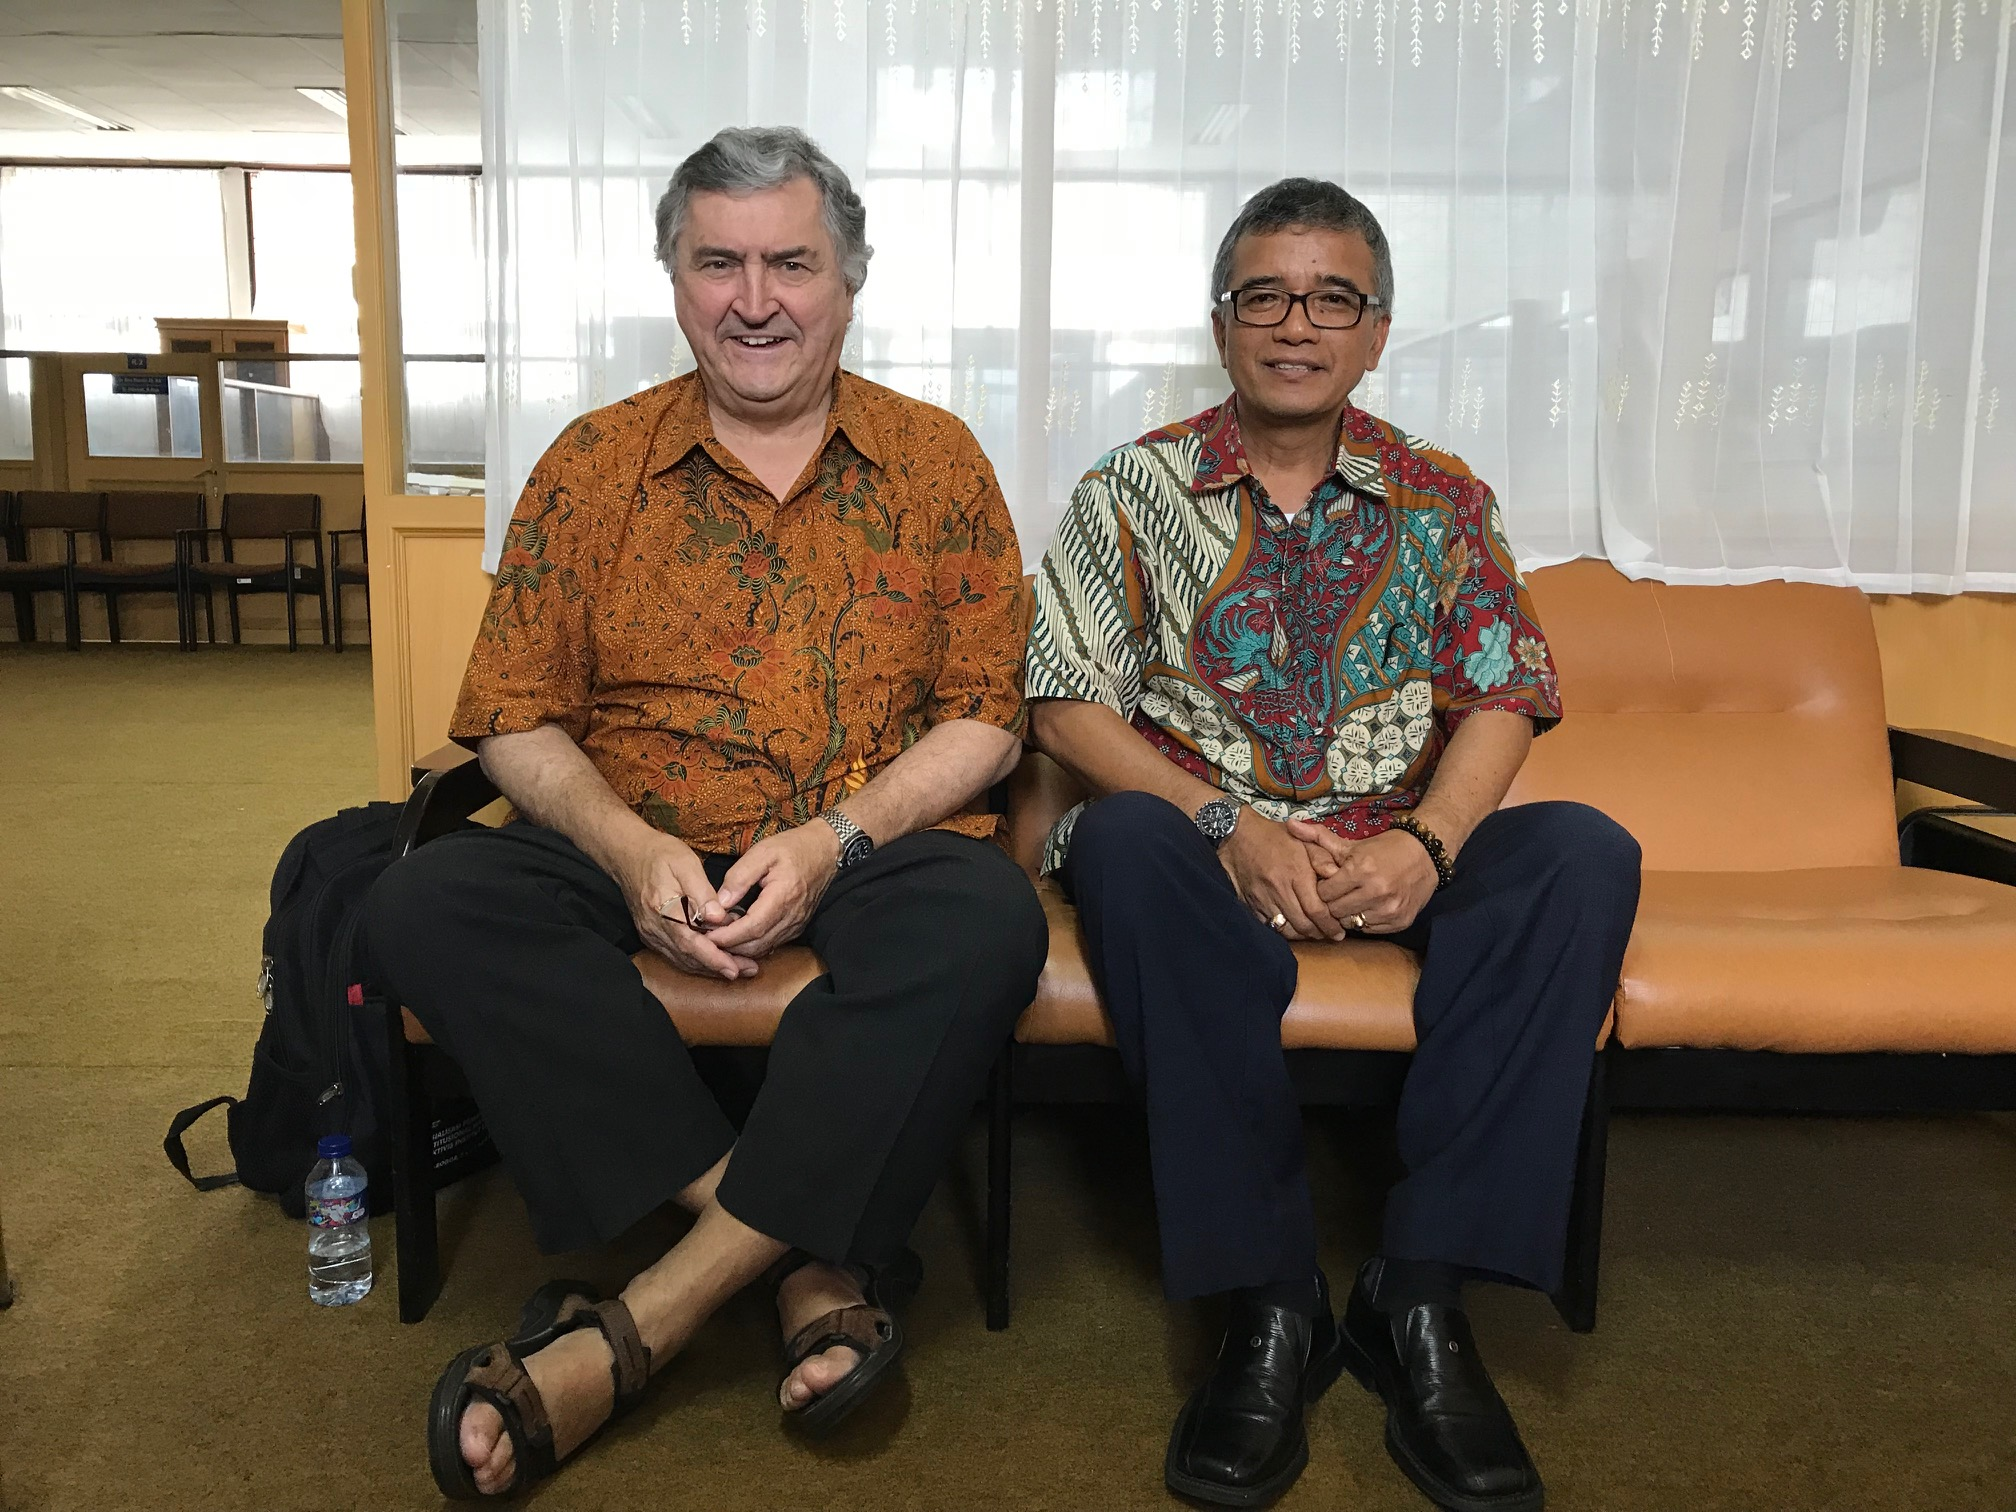 Paul Marshall with Professor Gusti Asnan of Andalus University. Photo courtesy of Paul Marshall.